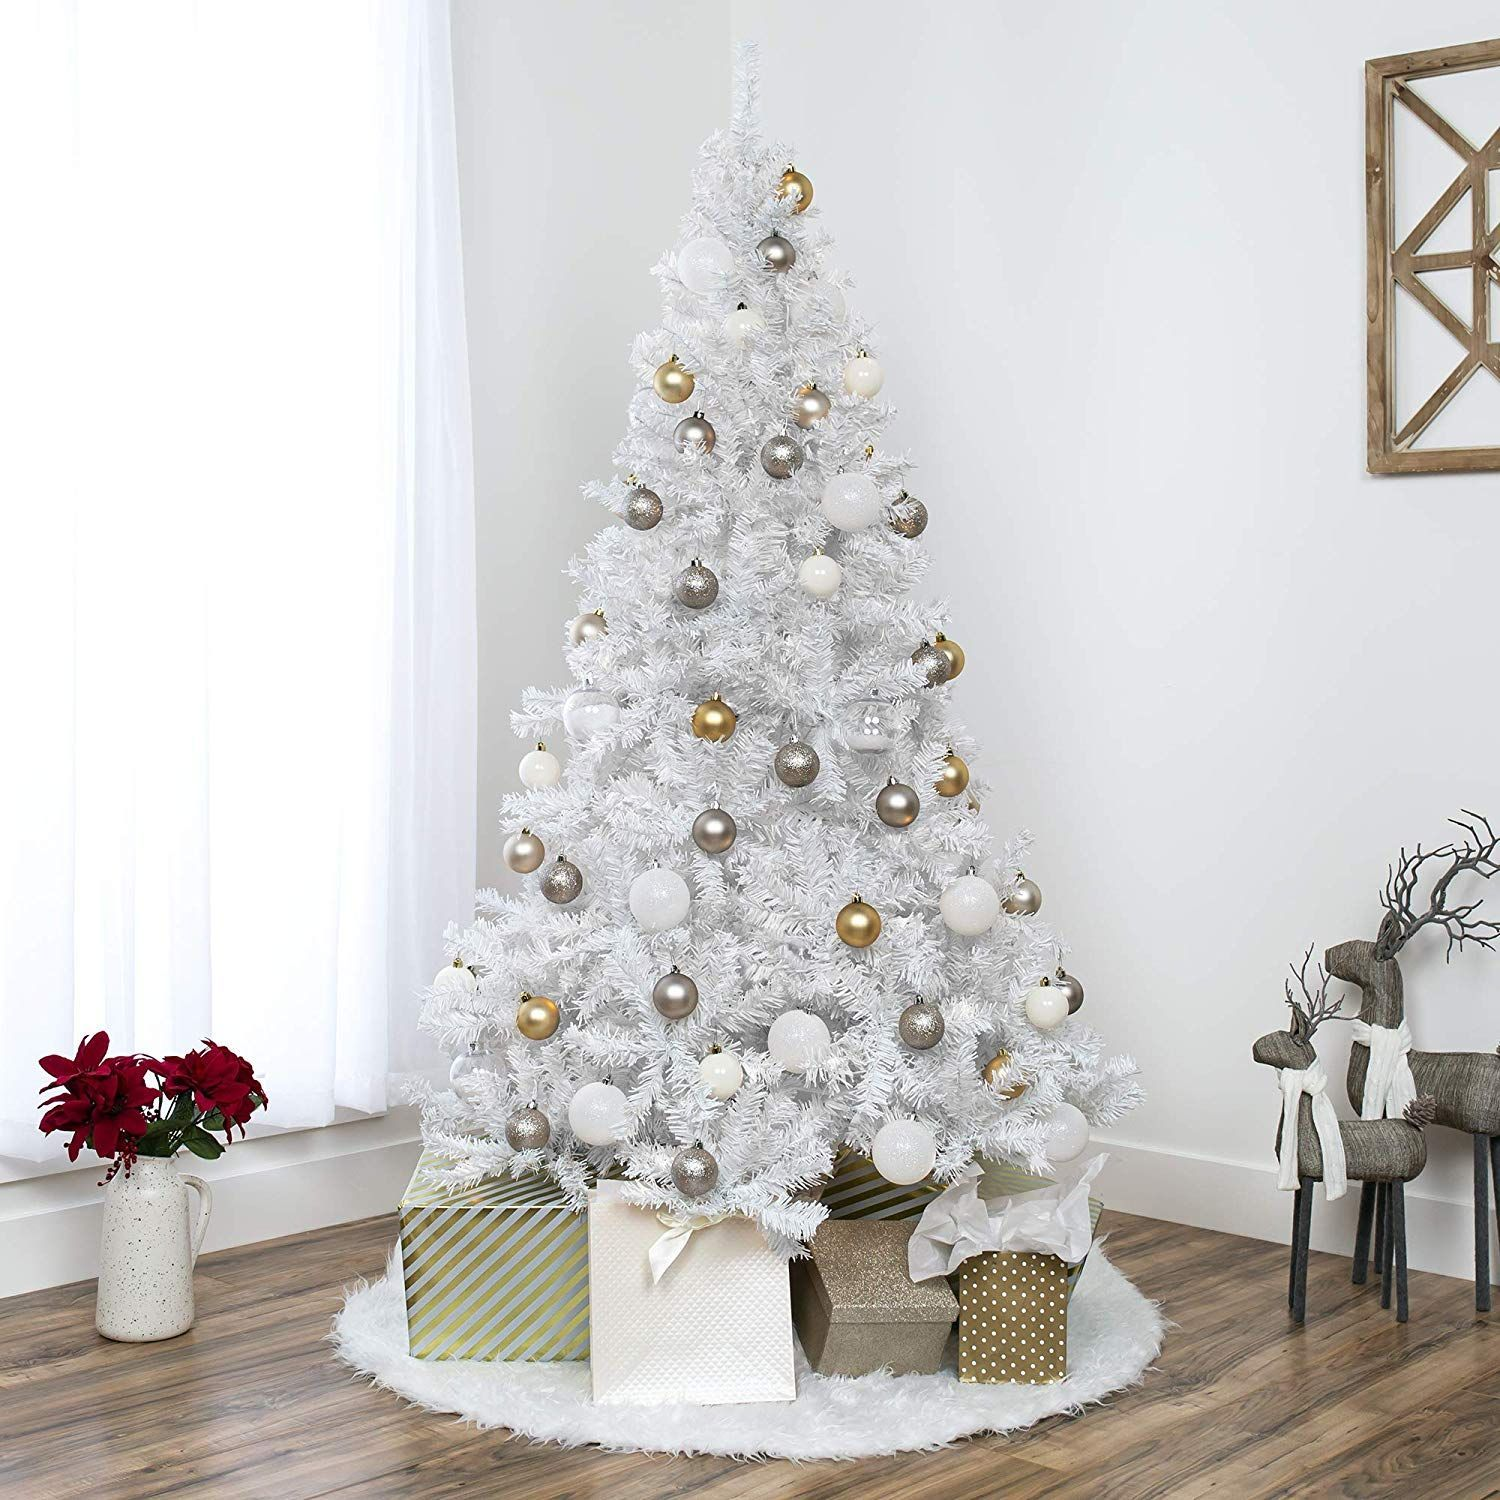 20+ White Christmas Tree Decorations